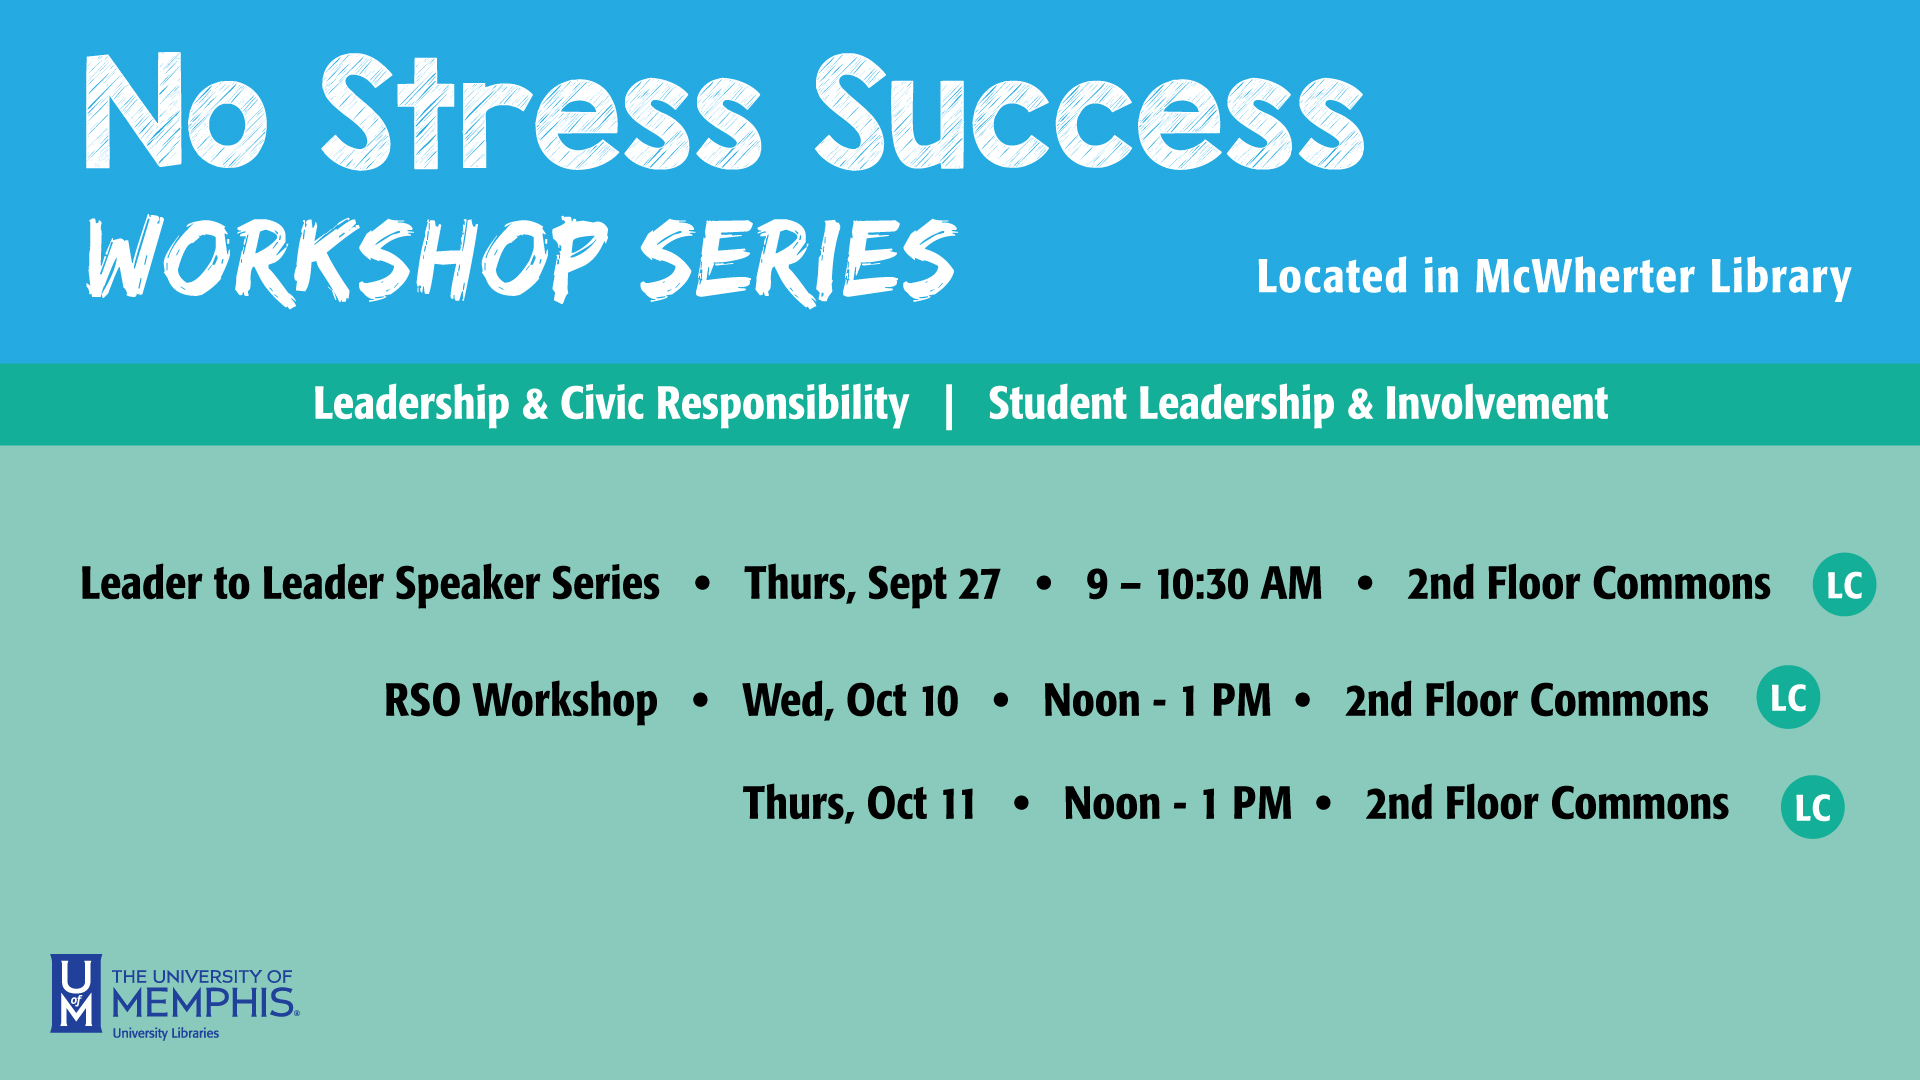 No Stress Success Workshop: RSO Workshop